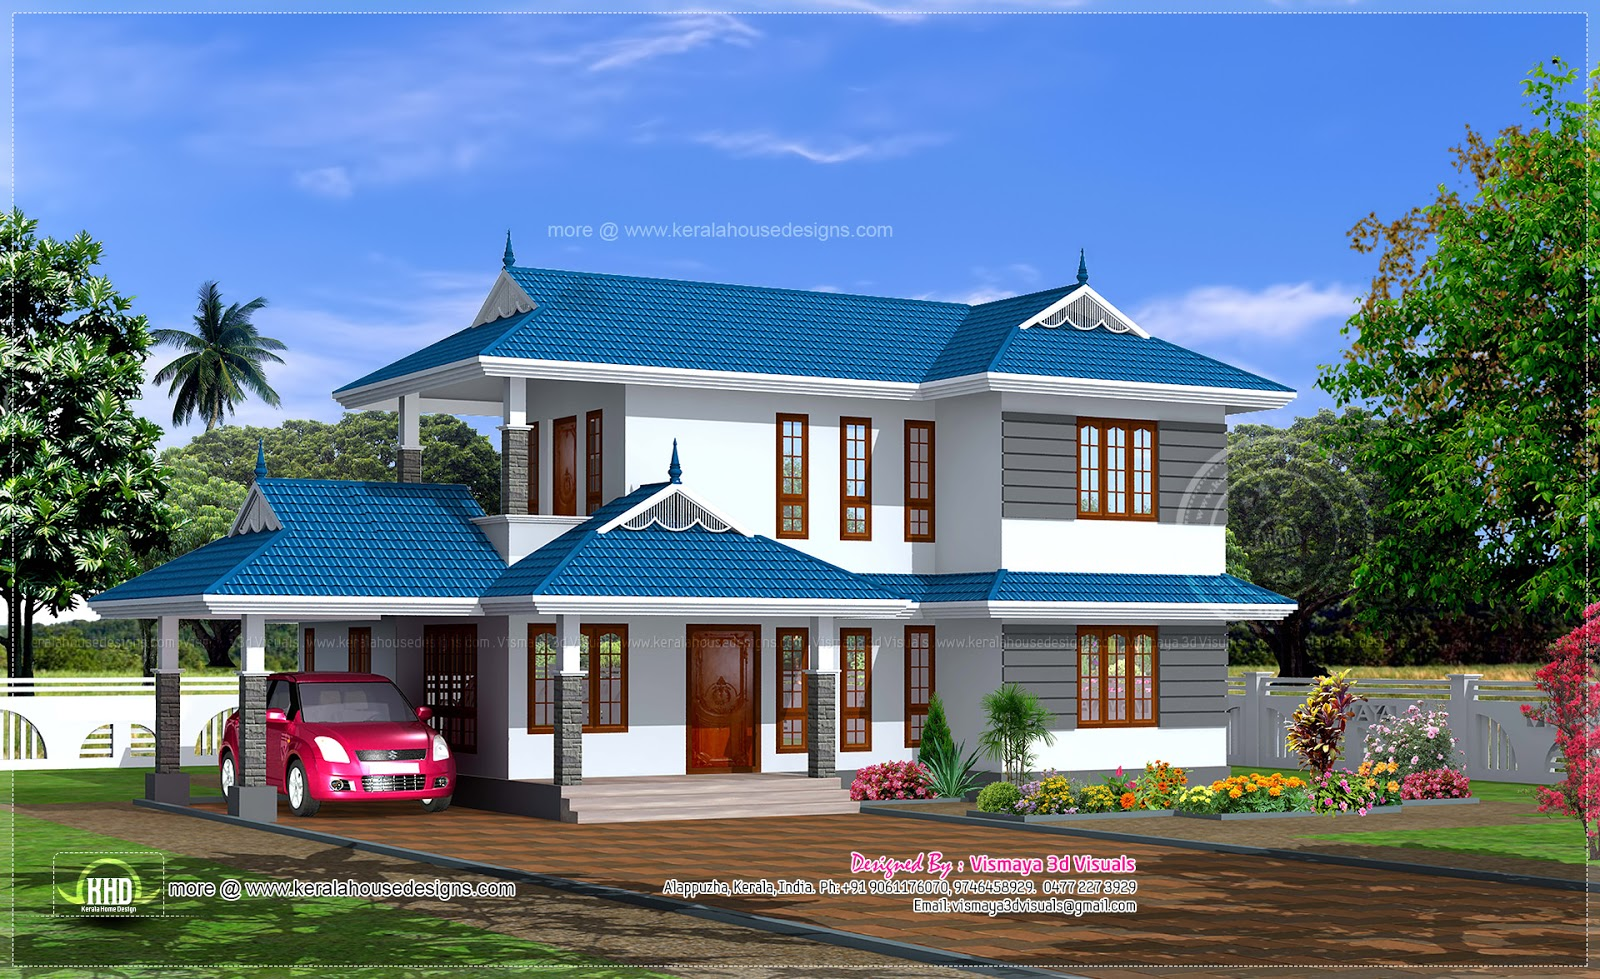 1895 sq ft 3 bed room kerala style villa house design plans for Kerala style villa plans